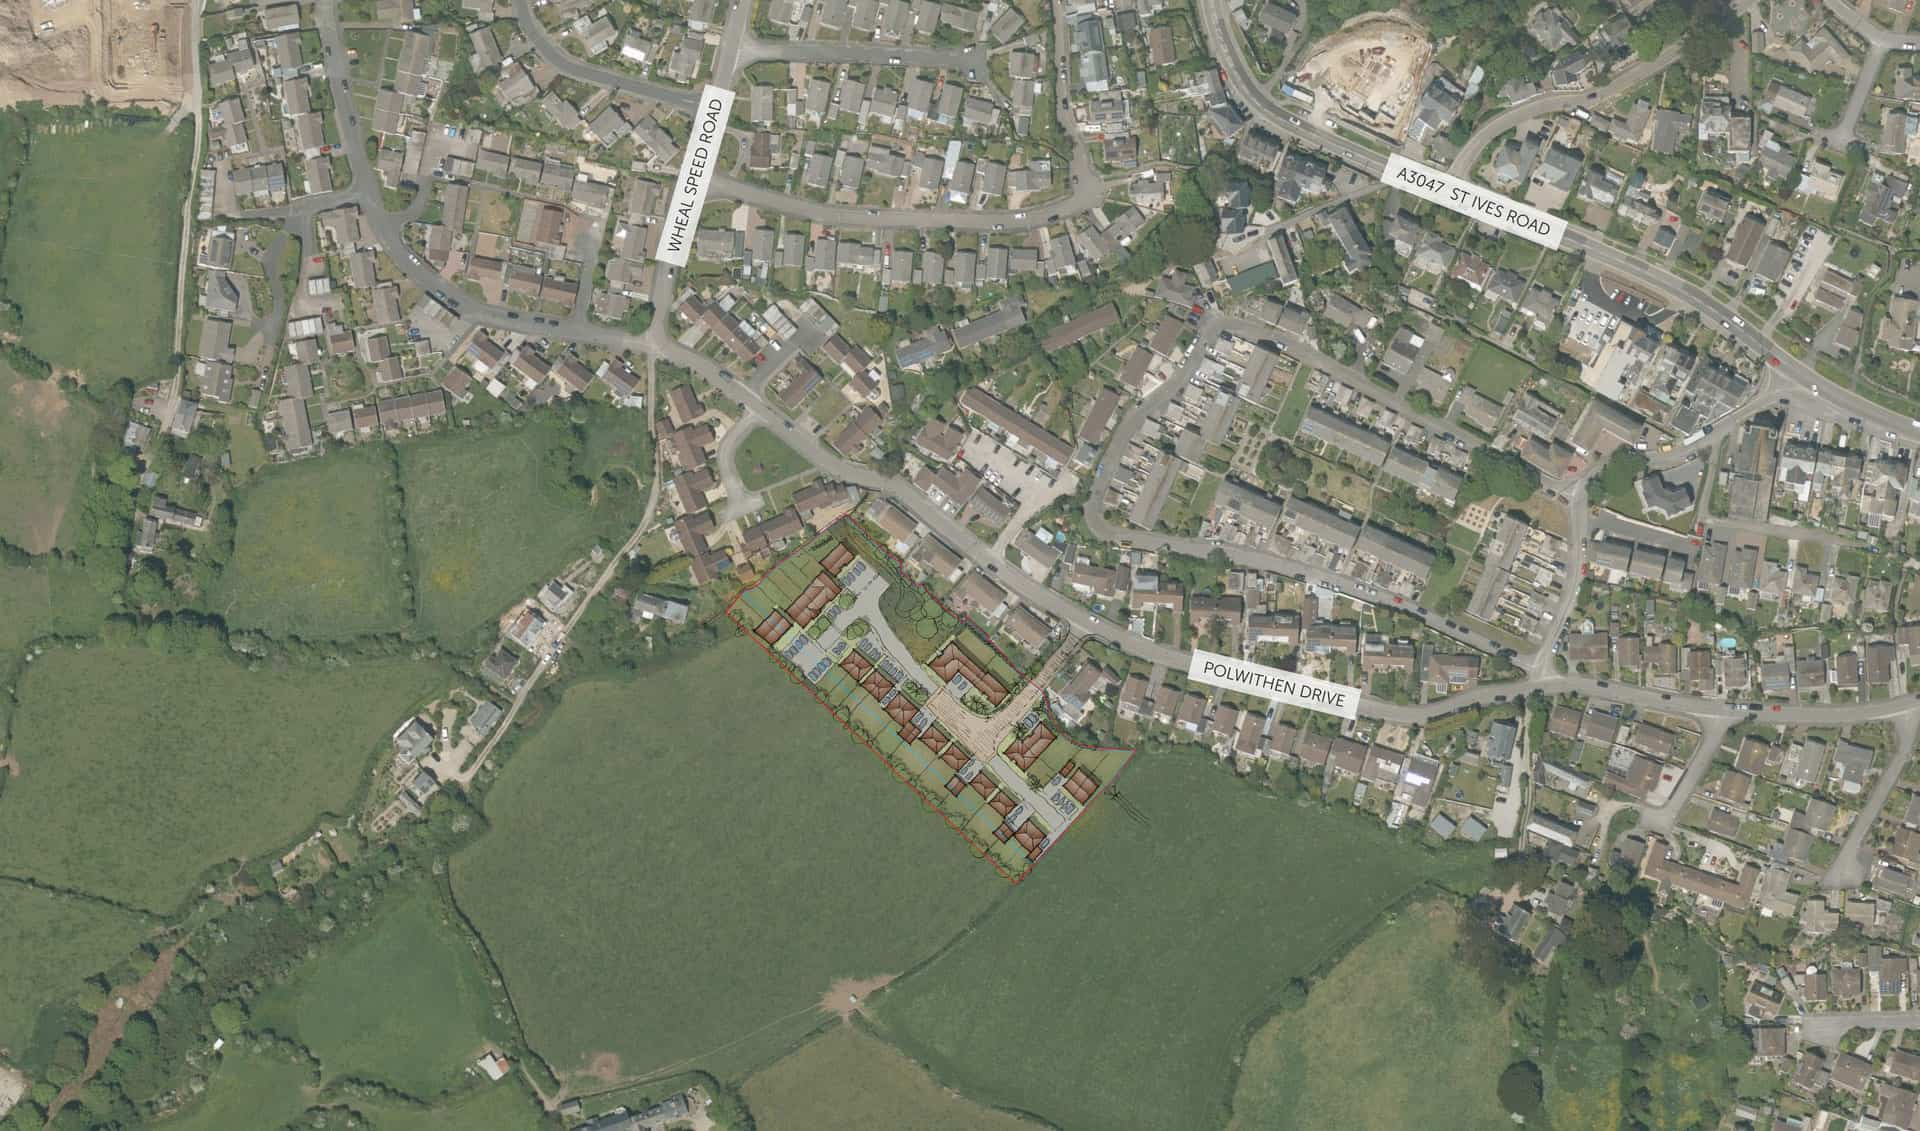 The proposals for the land off Polwithen Drive, within the context of the wider area